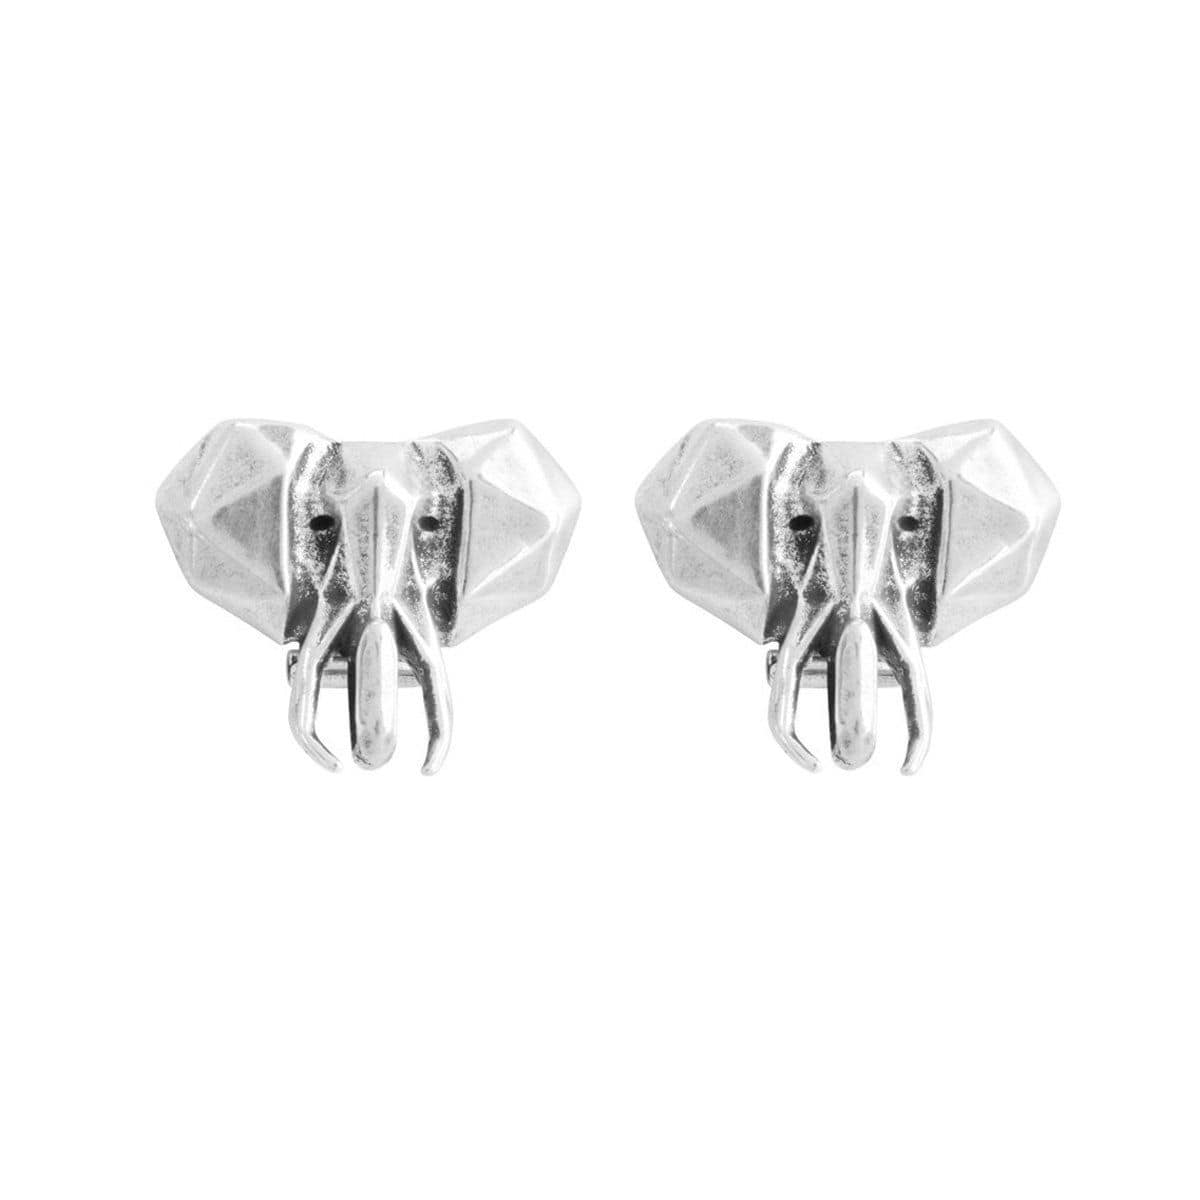 Wakiche Layered Silver Earrings - PEN0529MTL0000U-UNO de 50-Renee Taylor Gallery